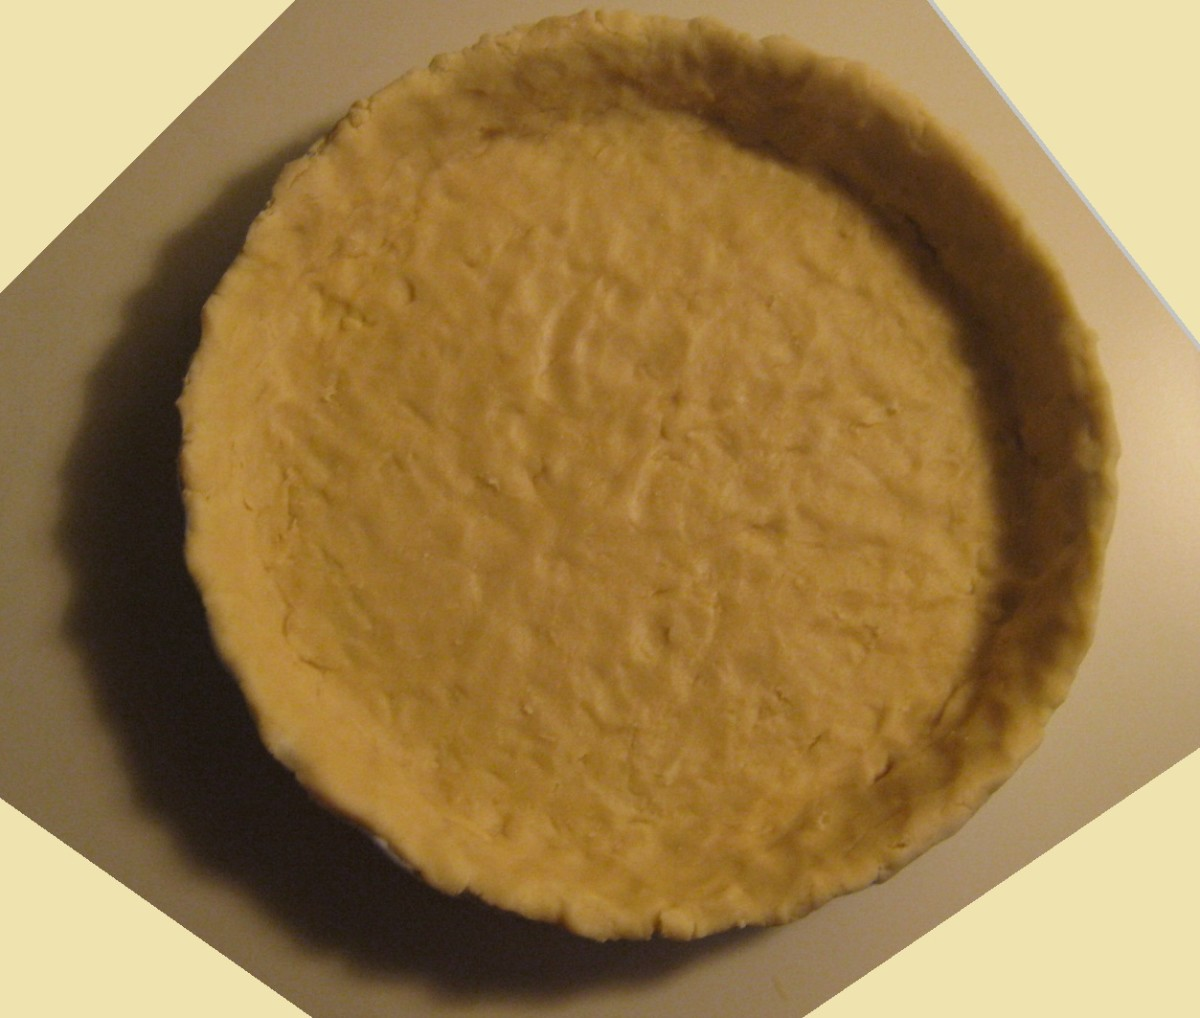 Easy pie crust from scratch that does not require refrigeration